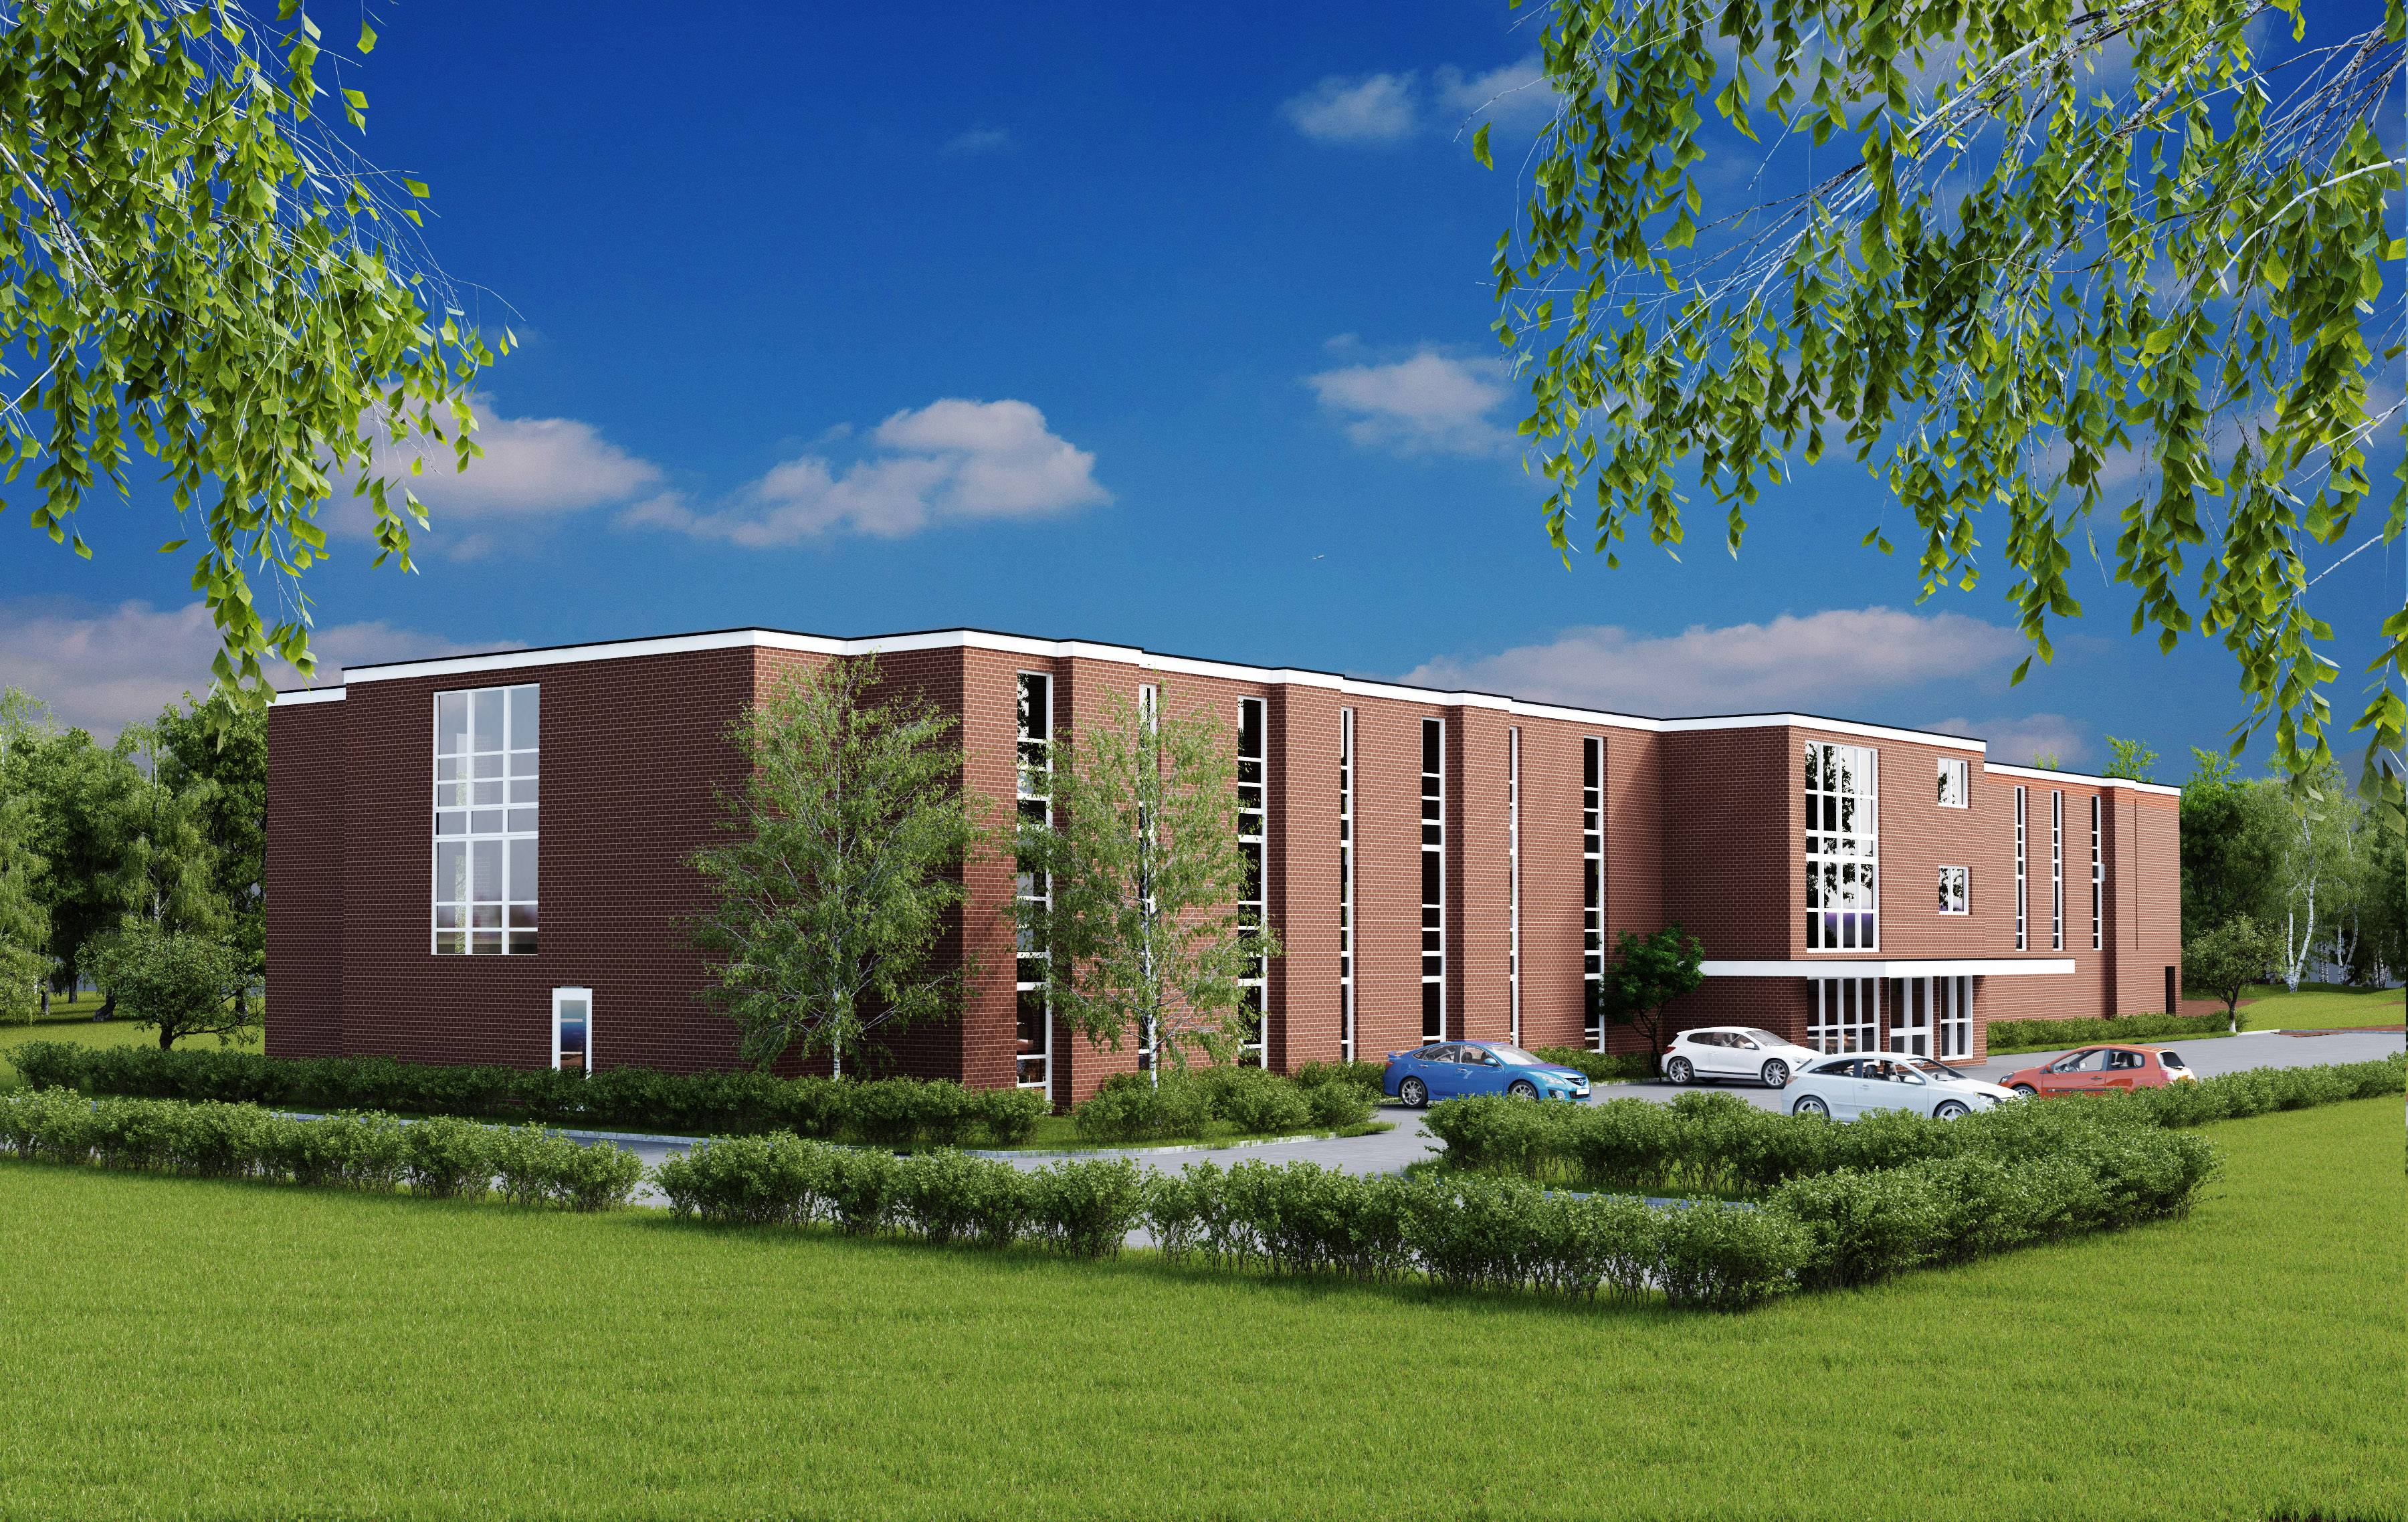 Addison Rehabilitation and Living Center, a skilled nursing facility with 120 beds, is being built at 1760 Capital Street in Elgin by Northbrook-based LEF Elgin.